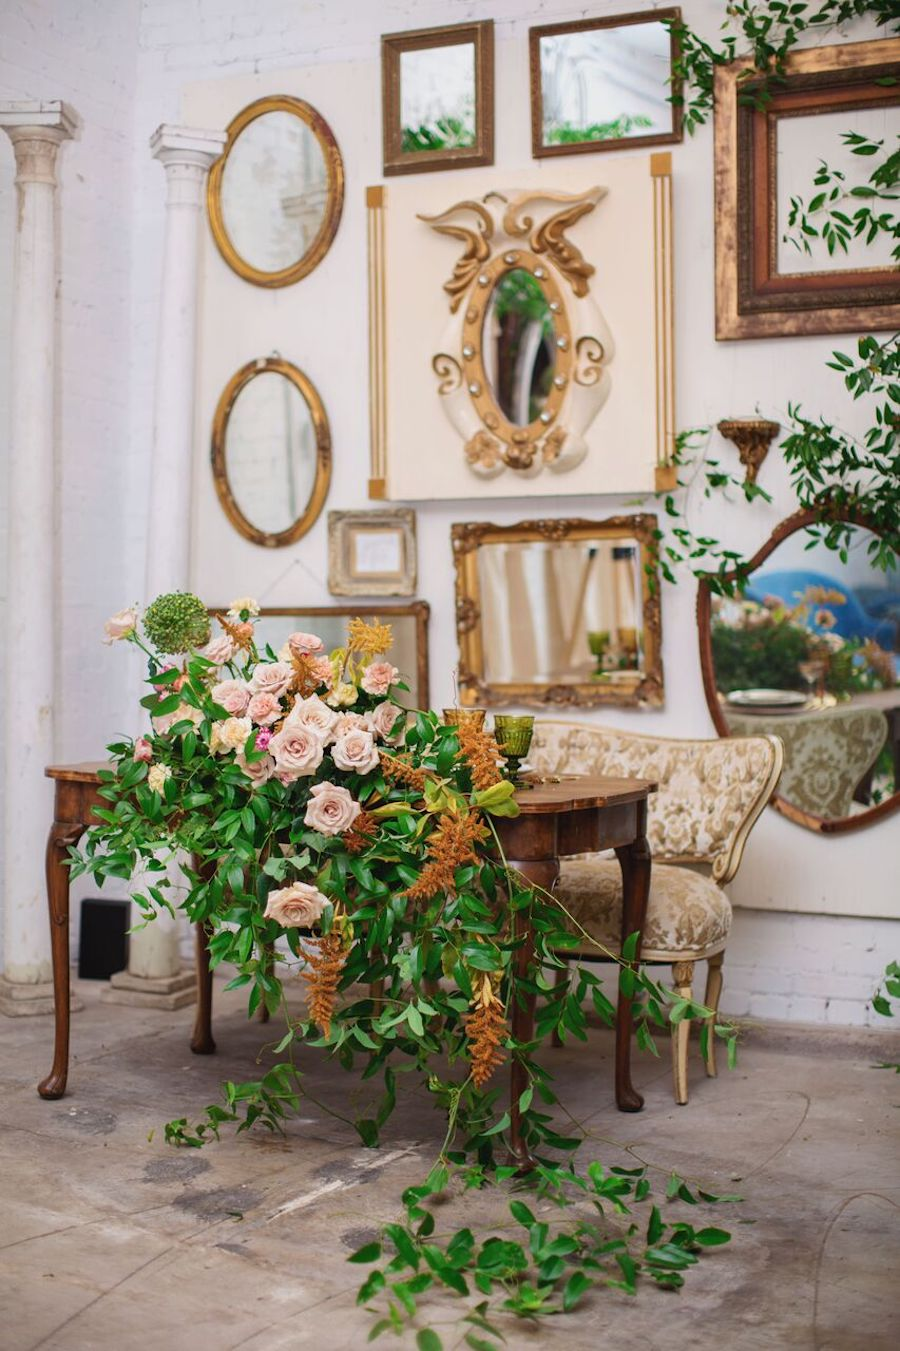 Greenery-Leather-Styled-Shoot-Sweet-Salvage-Rentals-Greg-Cahill6.jpg